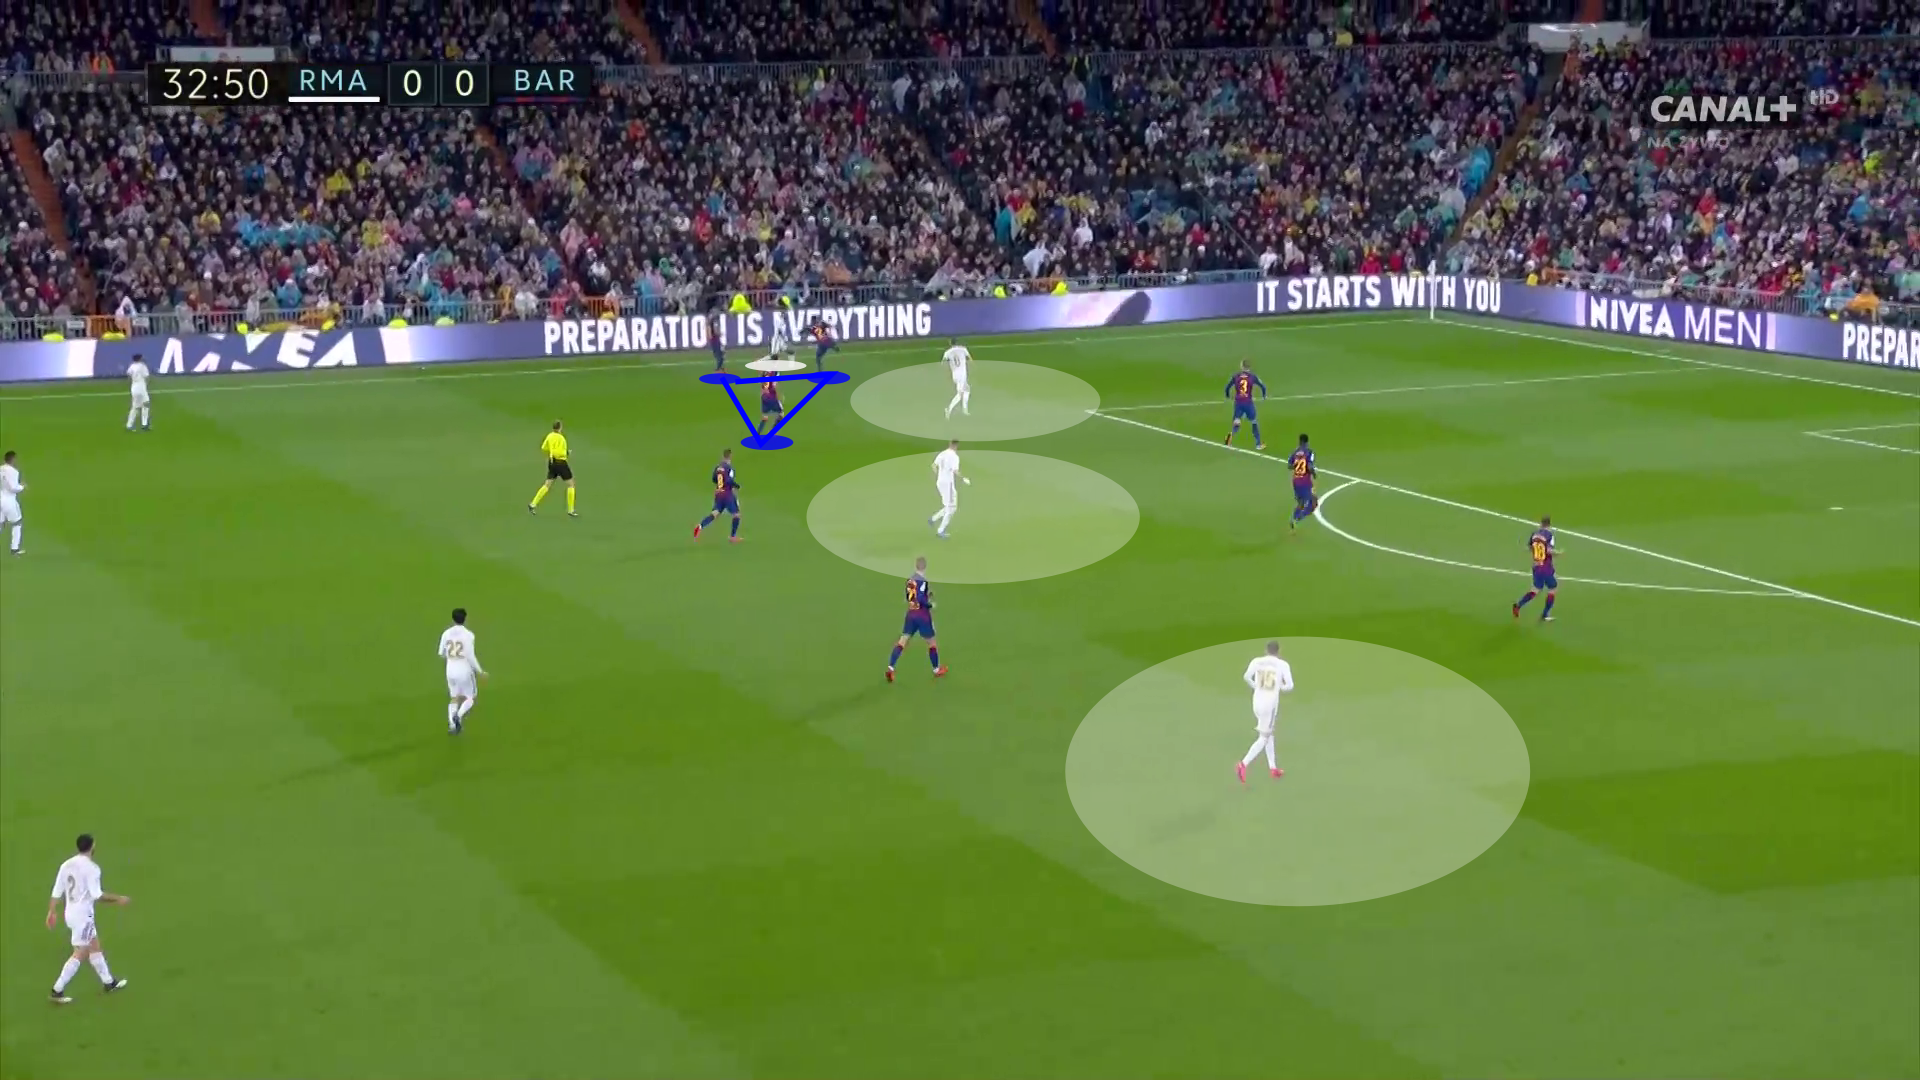 La Liga 2019/20: Real Madrid vs Barcelona - tactical analysis tactics